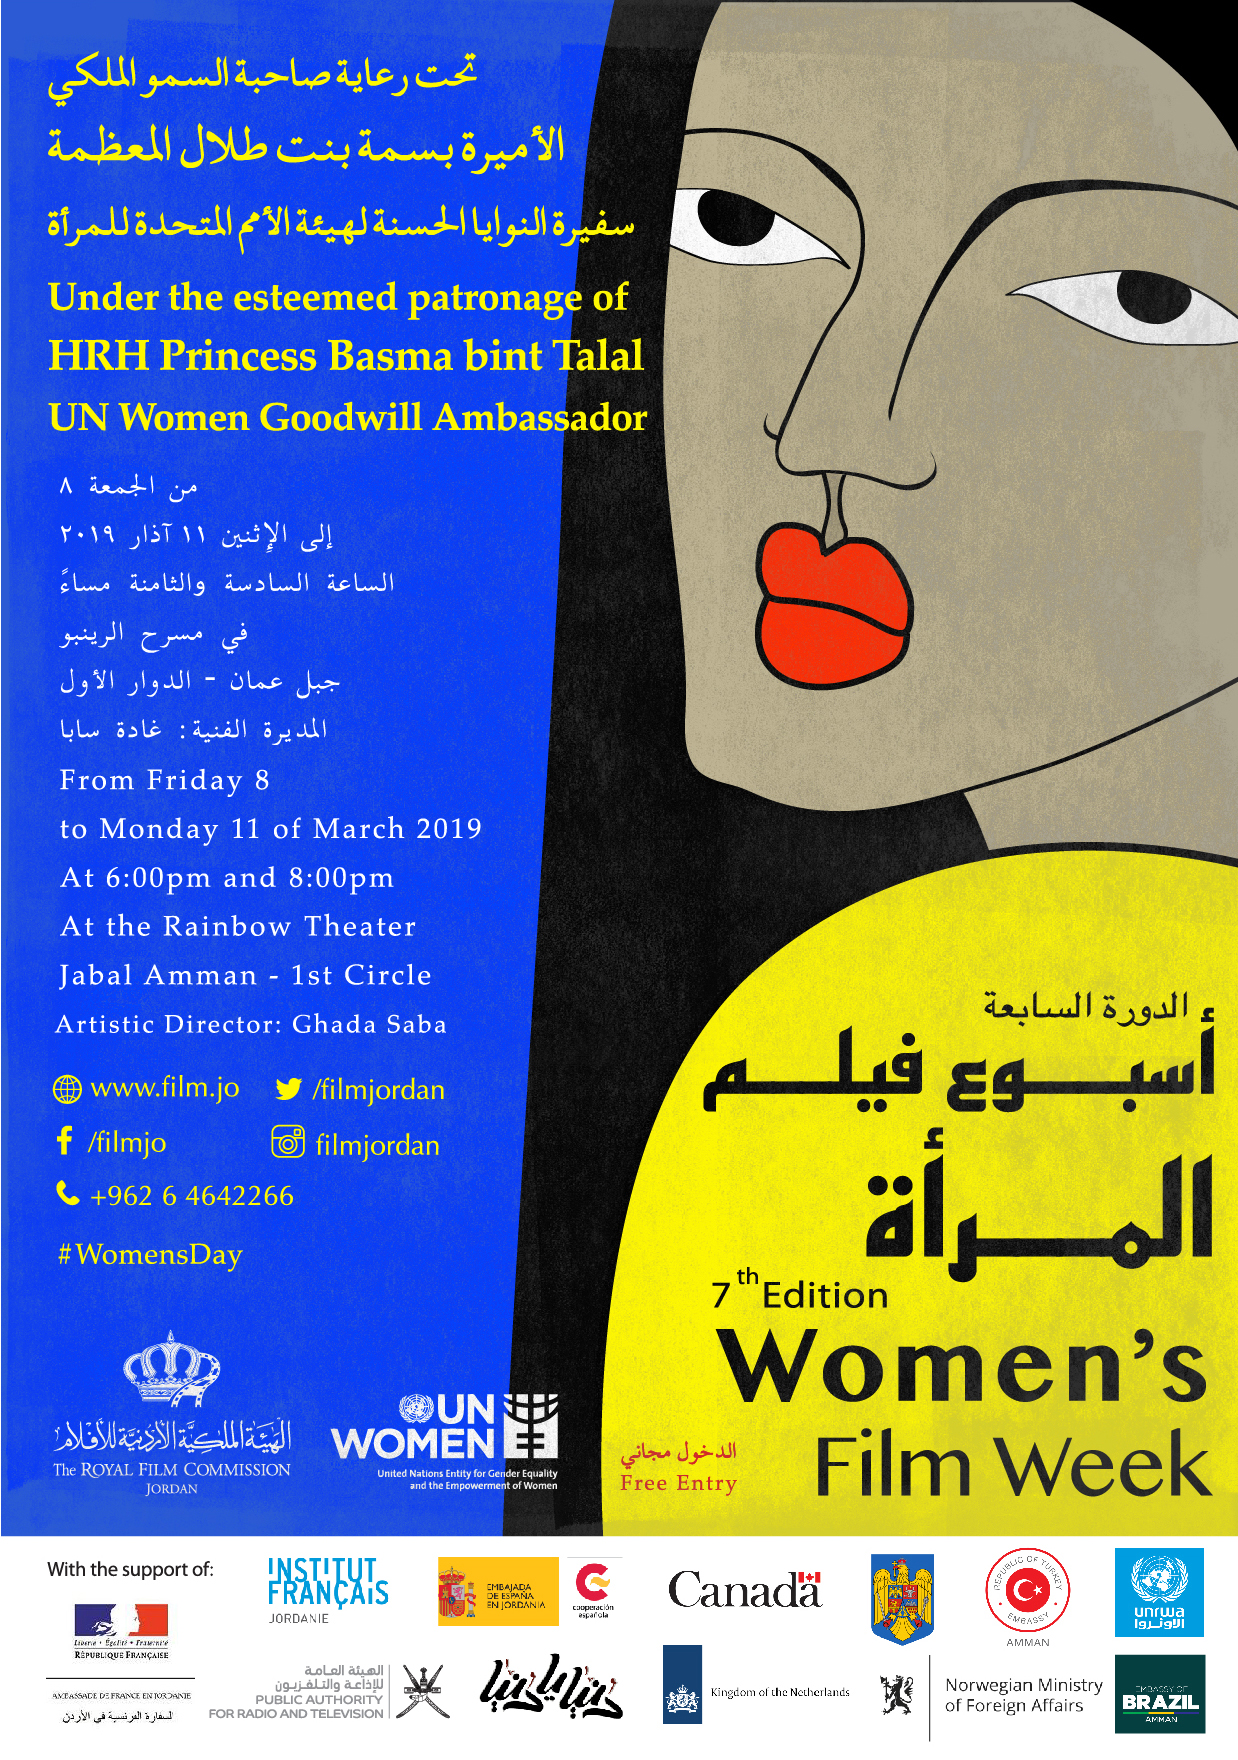 OPENING OF THE 7th EDITION OF THE WOMEN'S FILM WEEK